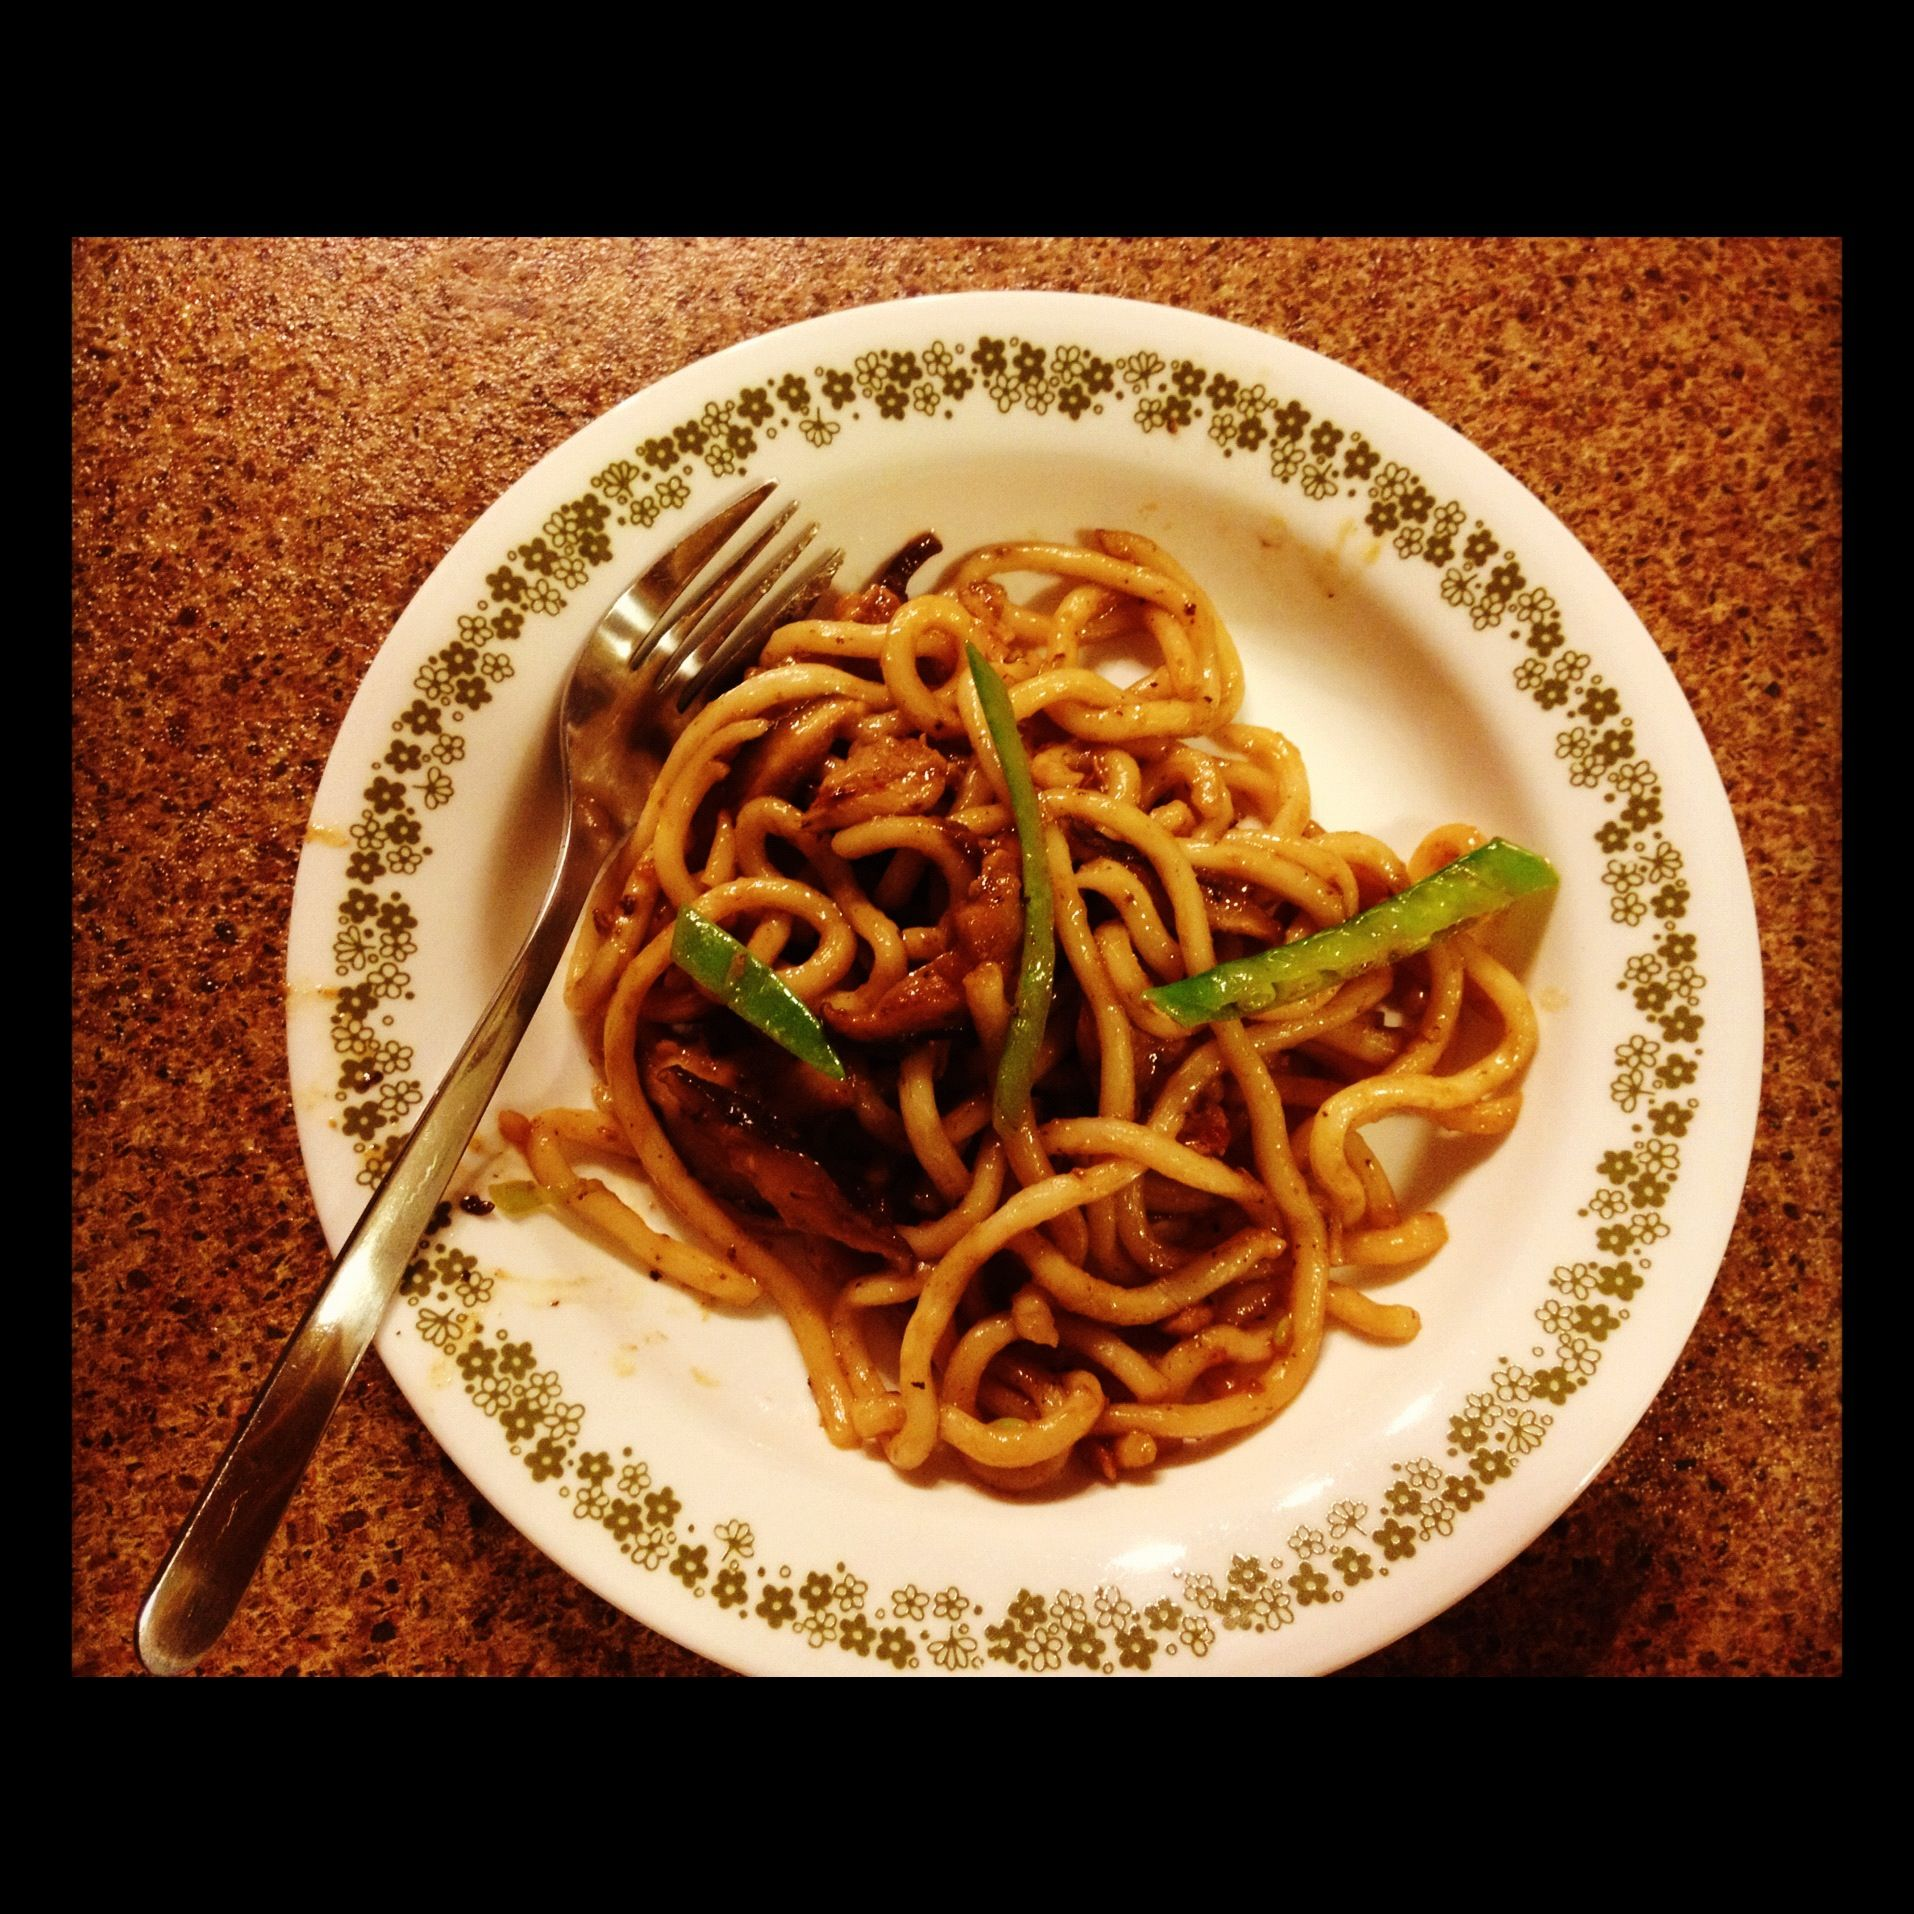 Recipes Chicken Udon Noodles: Udon Noodles With Shiitake & Chicken